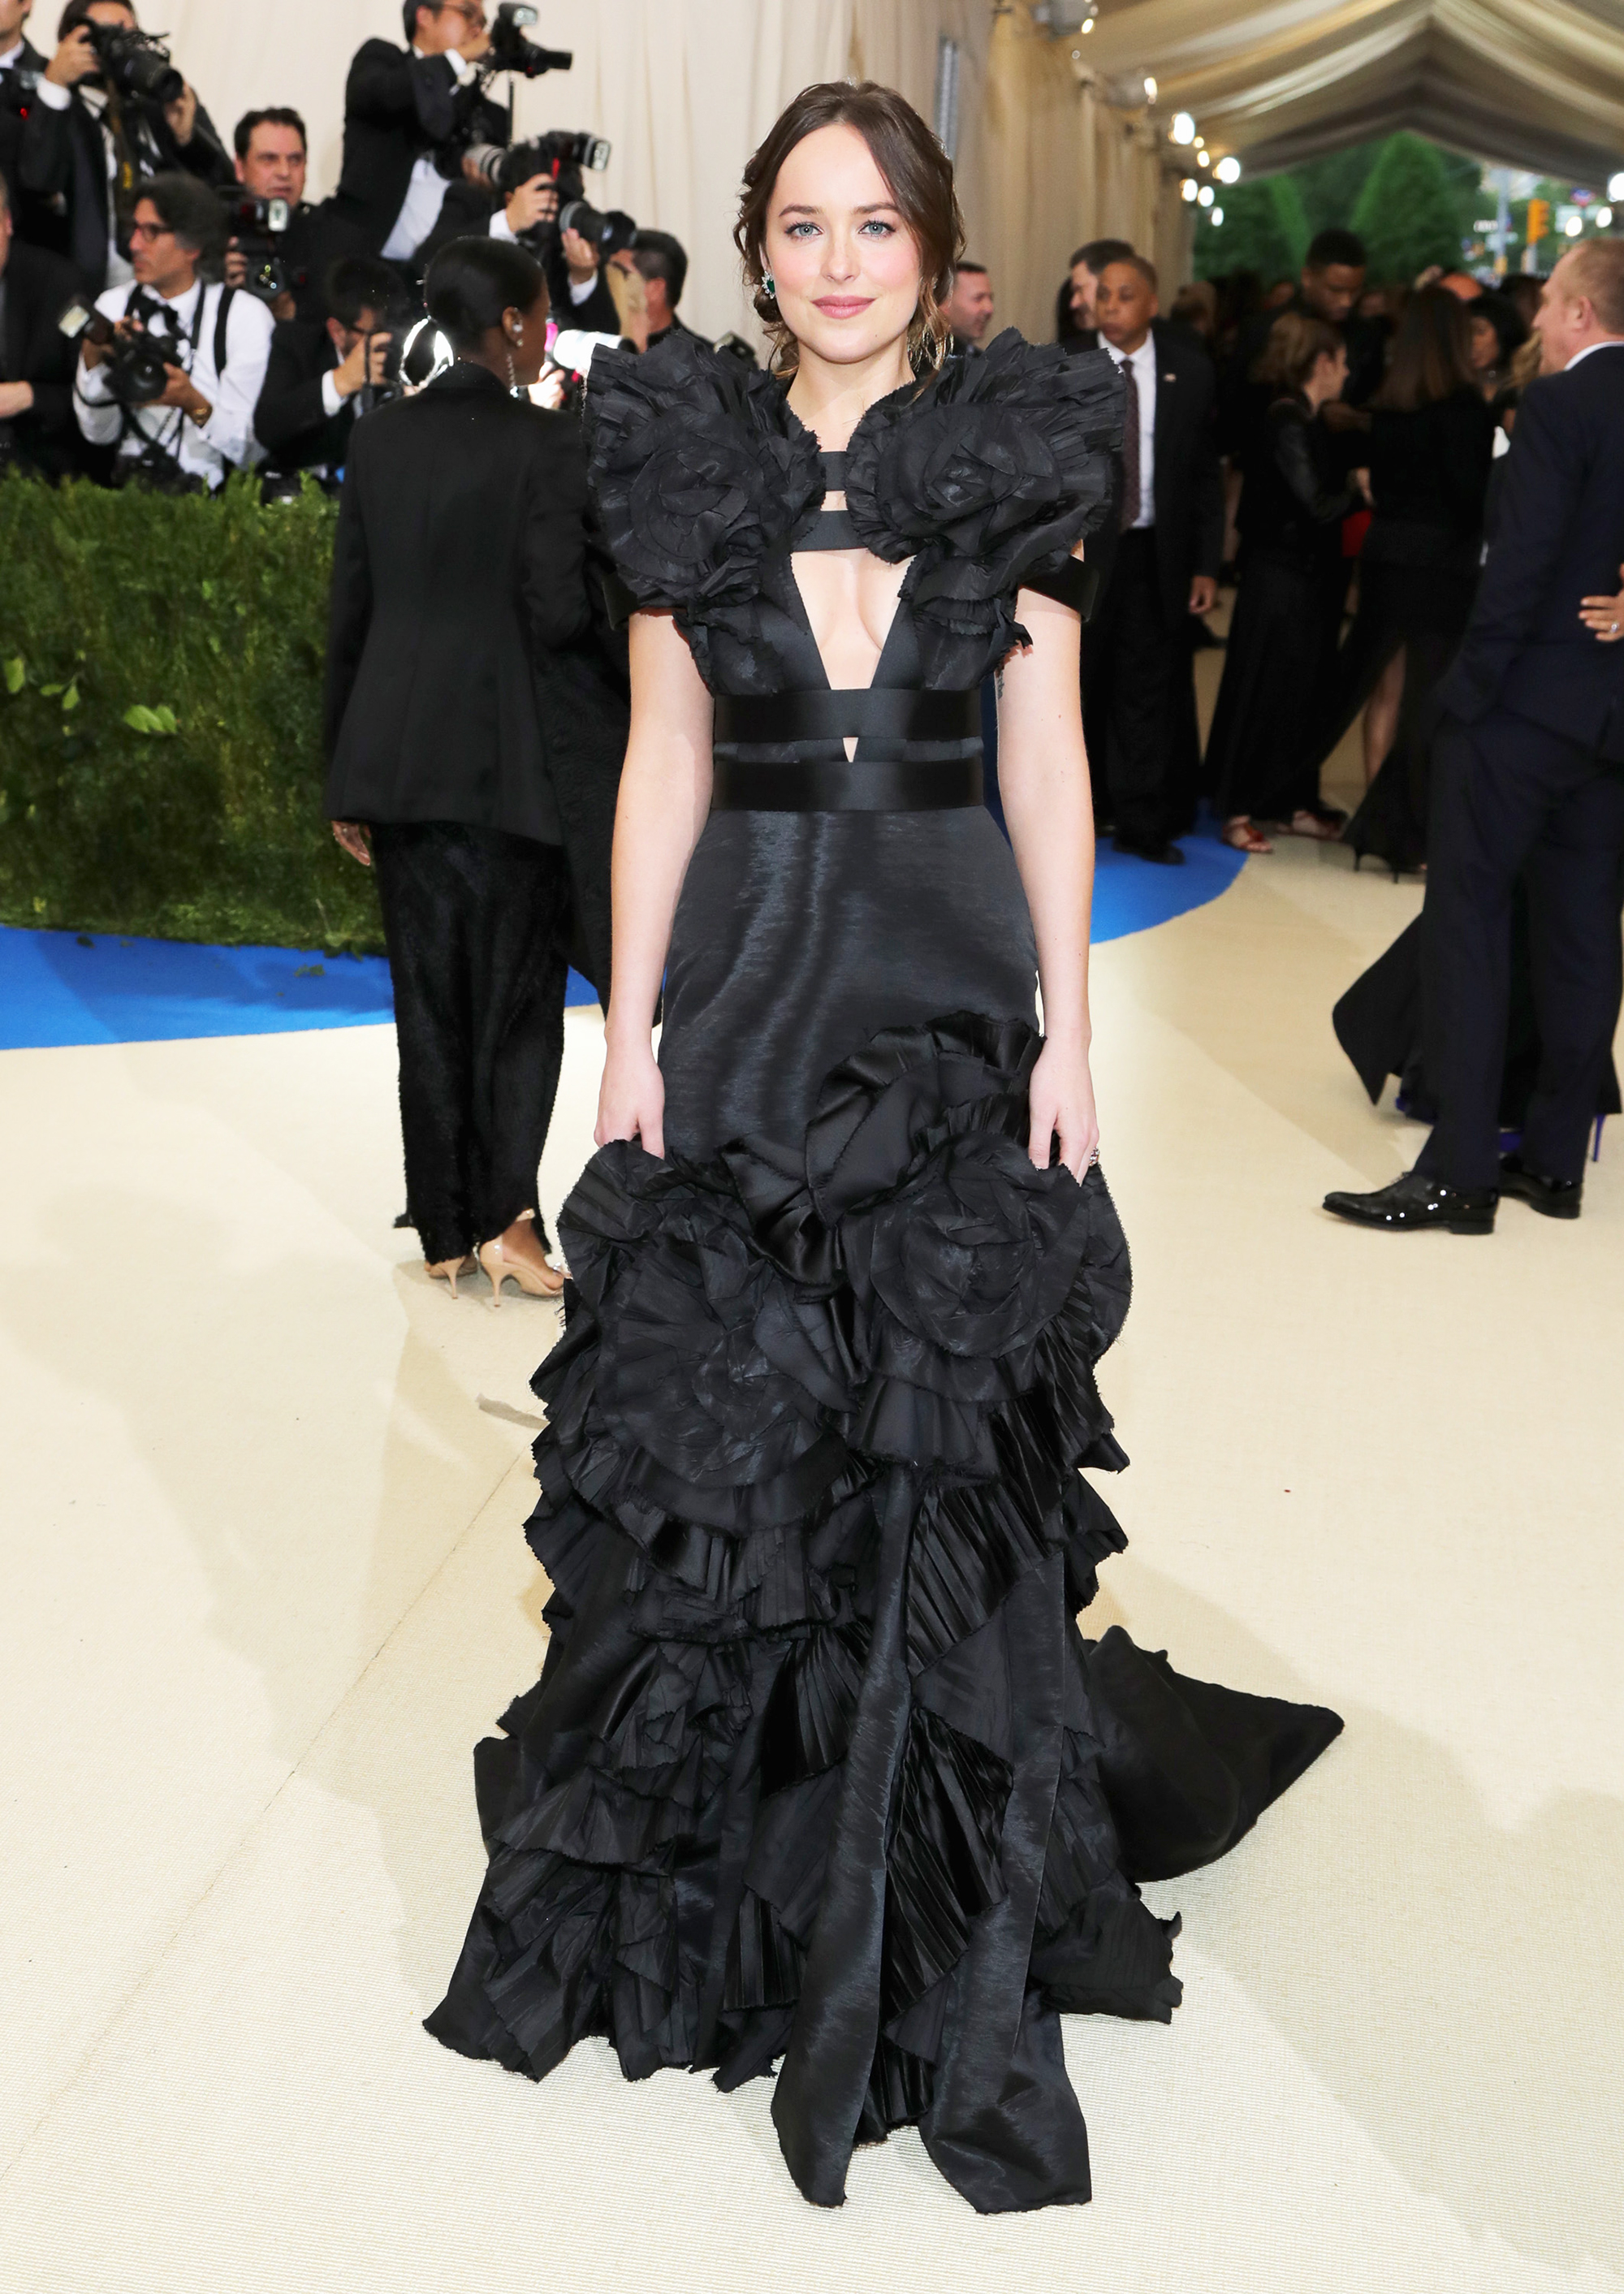 Dakota Johnson attends The Metropolitan Museum of Art's Costume Institute benefit gala celebrating the opening of the Rei Kawakubo/Comme des Garçons: Art of the In-Between exhibition in New York City, on May 1, 2017.